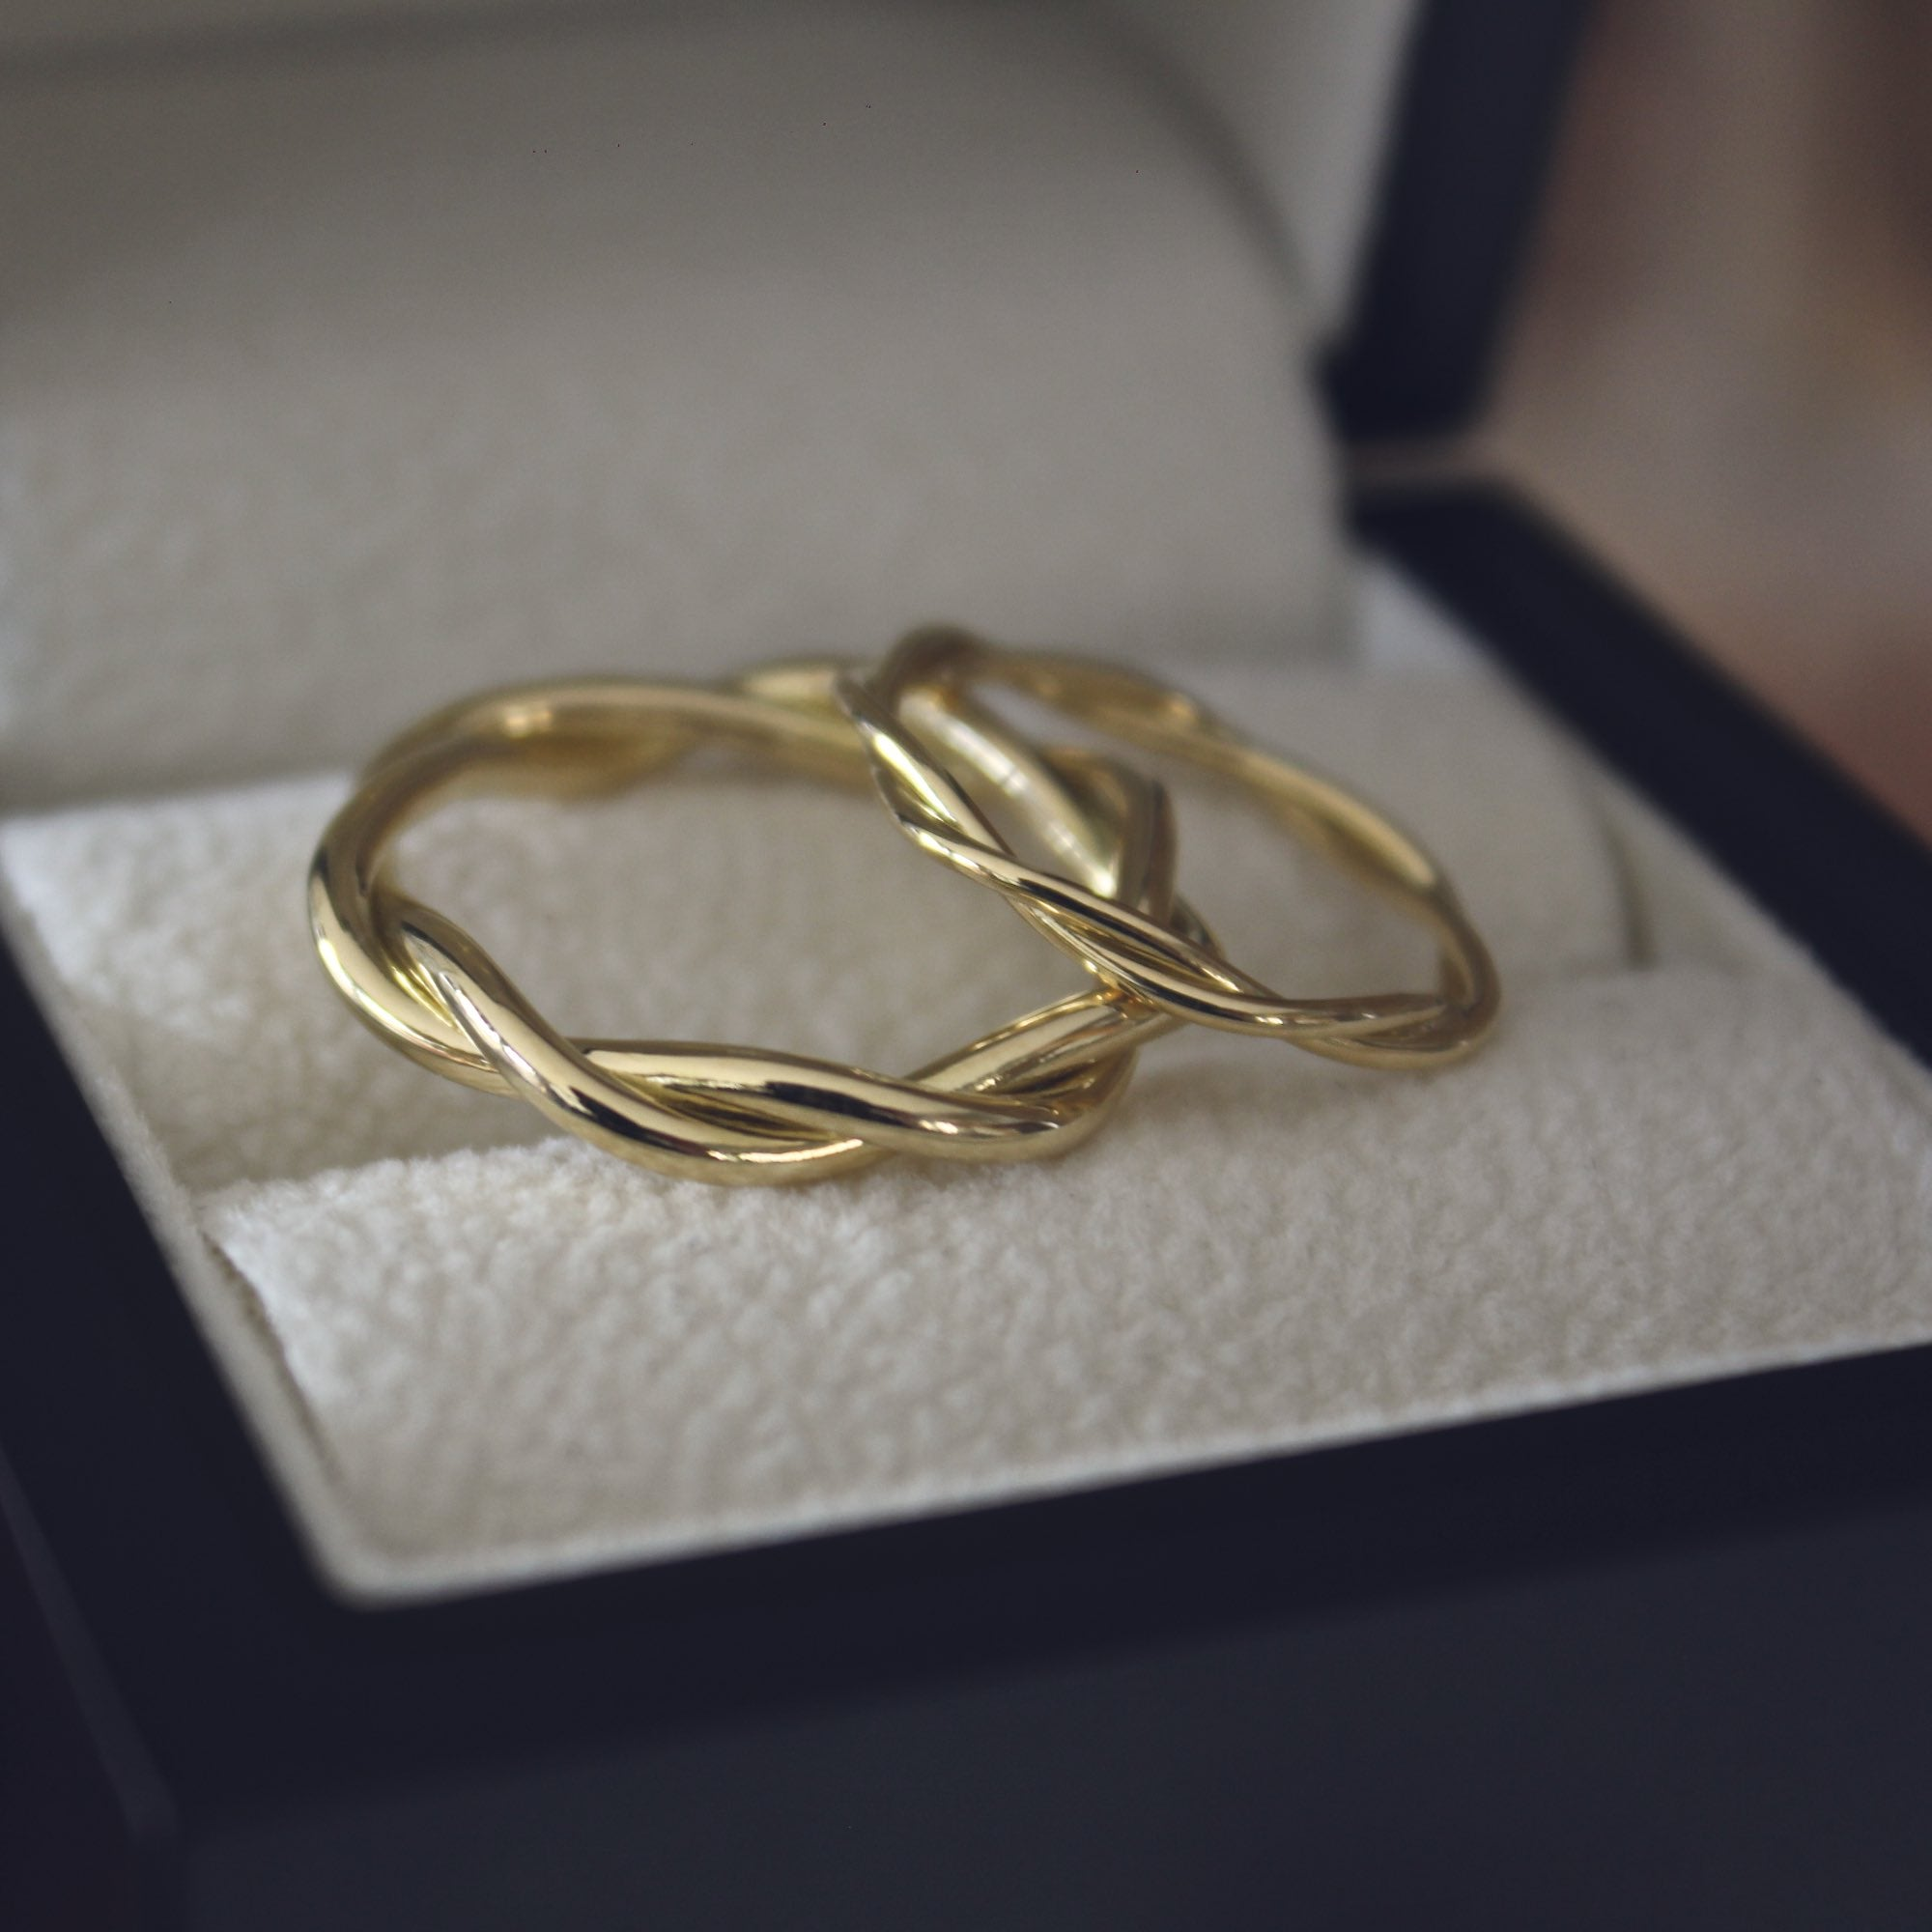 Bespoke handmade twisted gold wedding rings